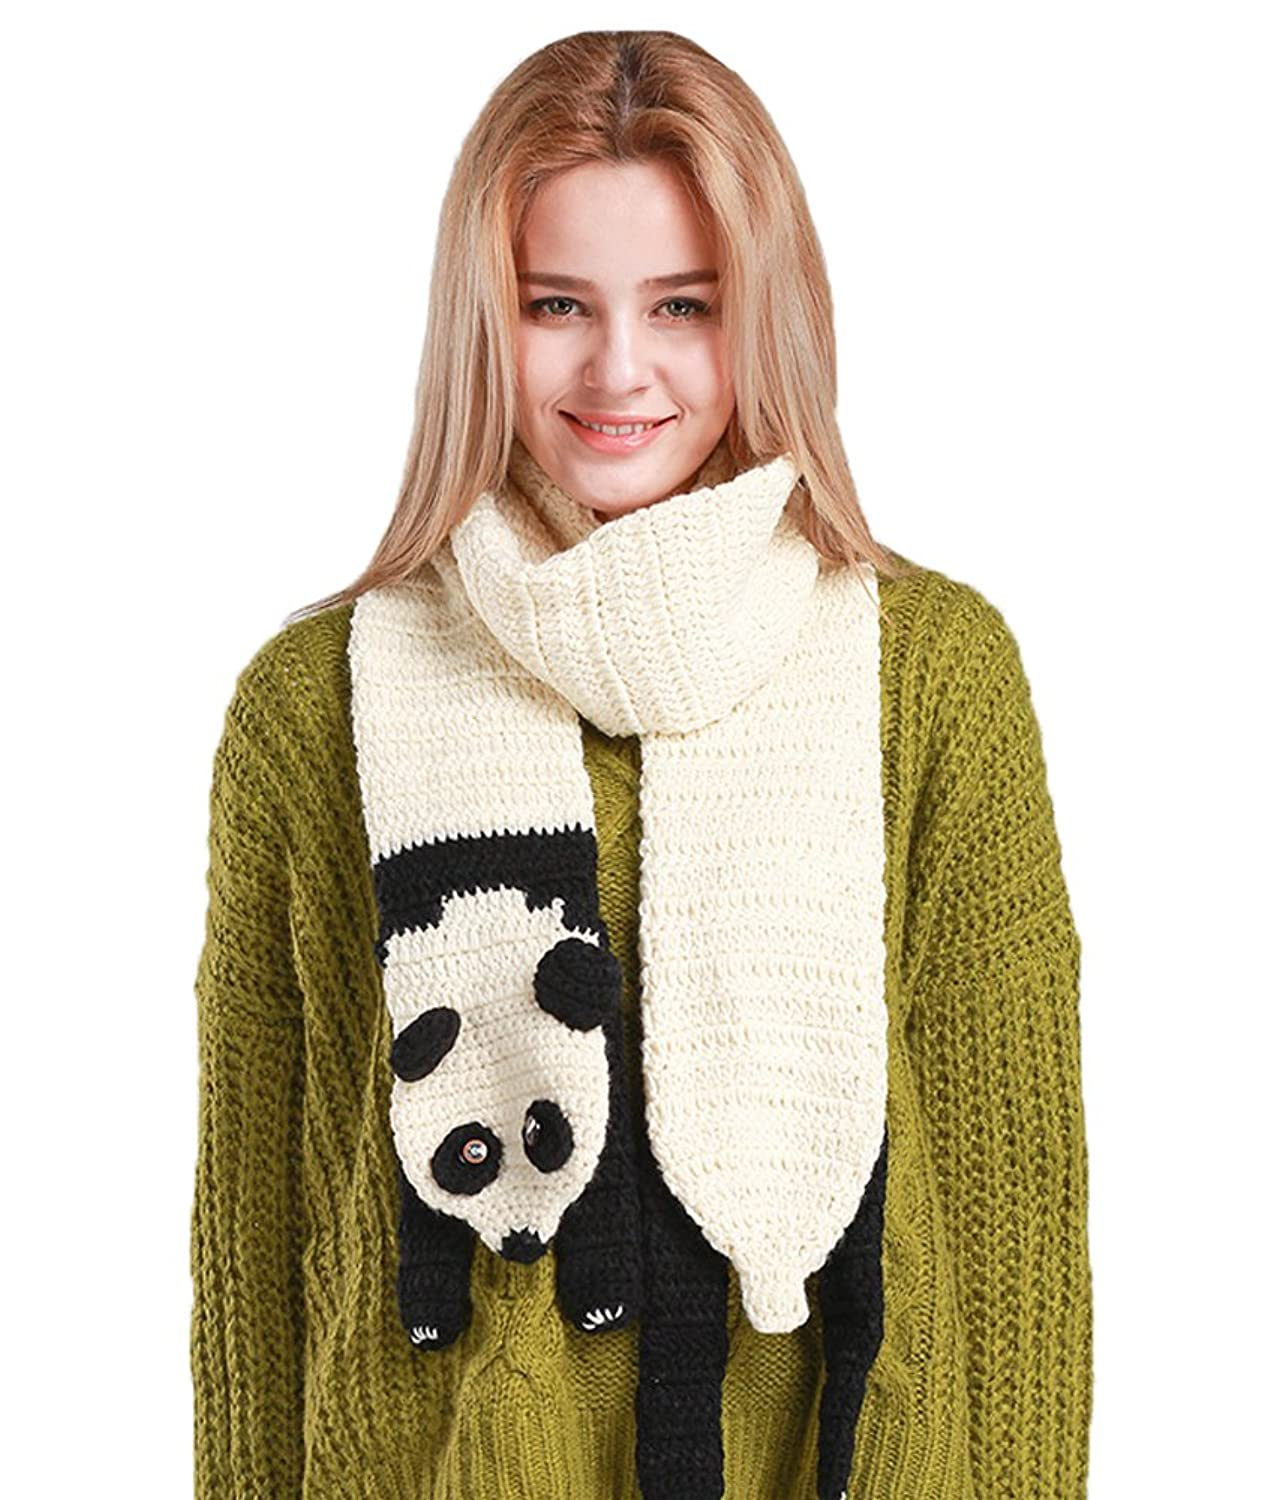 Women's Vivid Animals Scarf Myosotis510 Girls Cute Cable Knit Warm Long Scarves